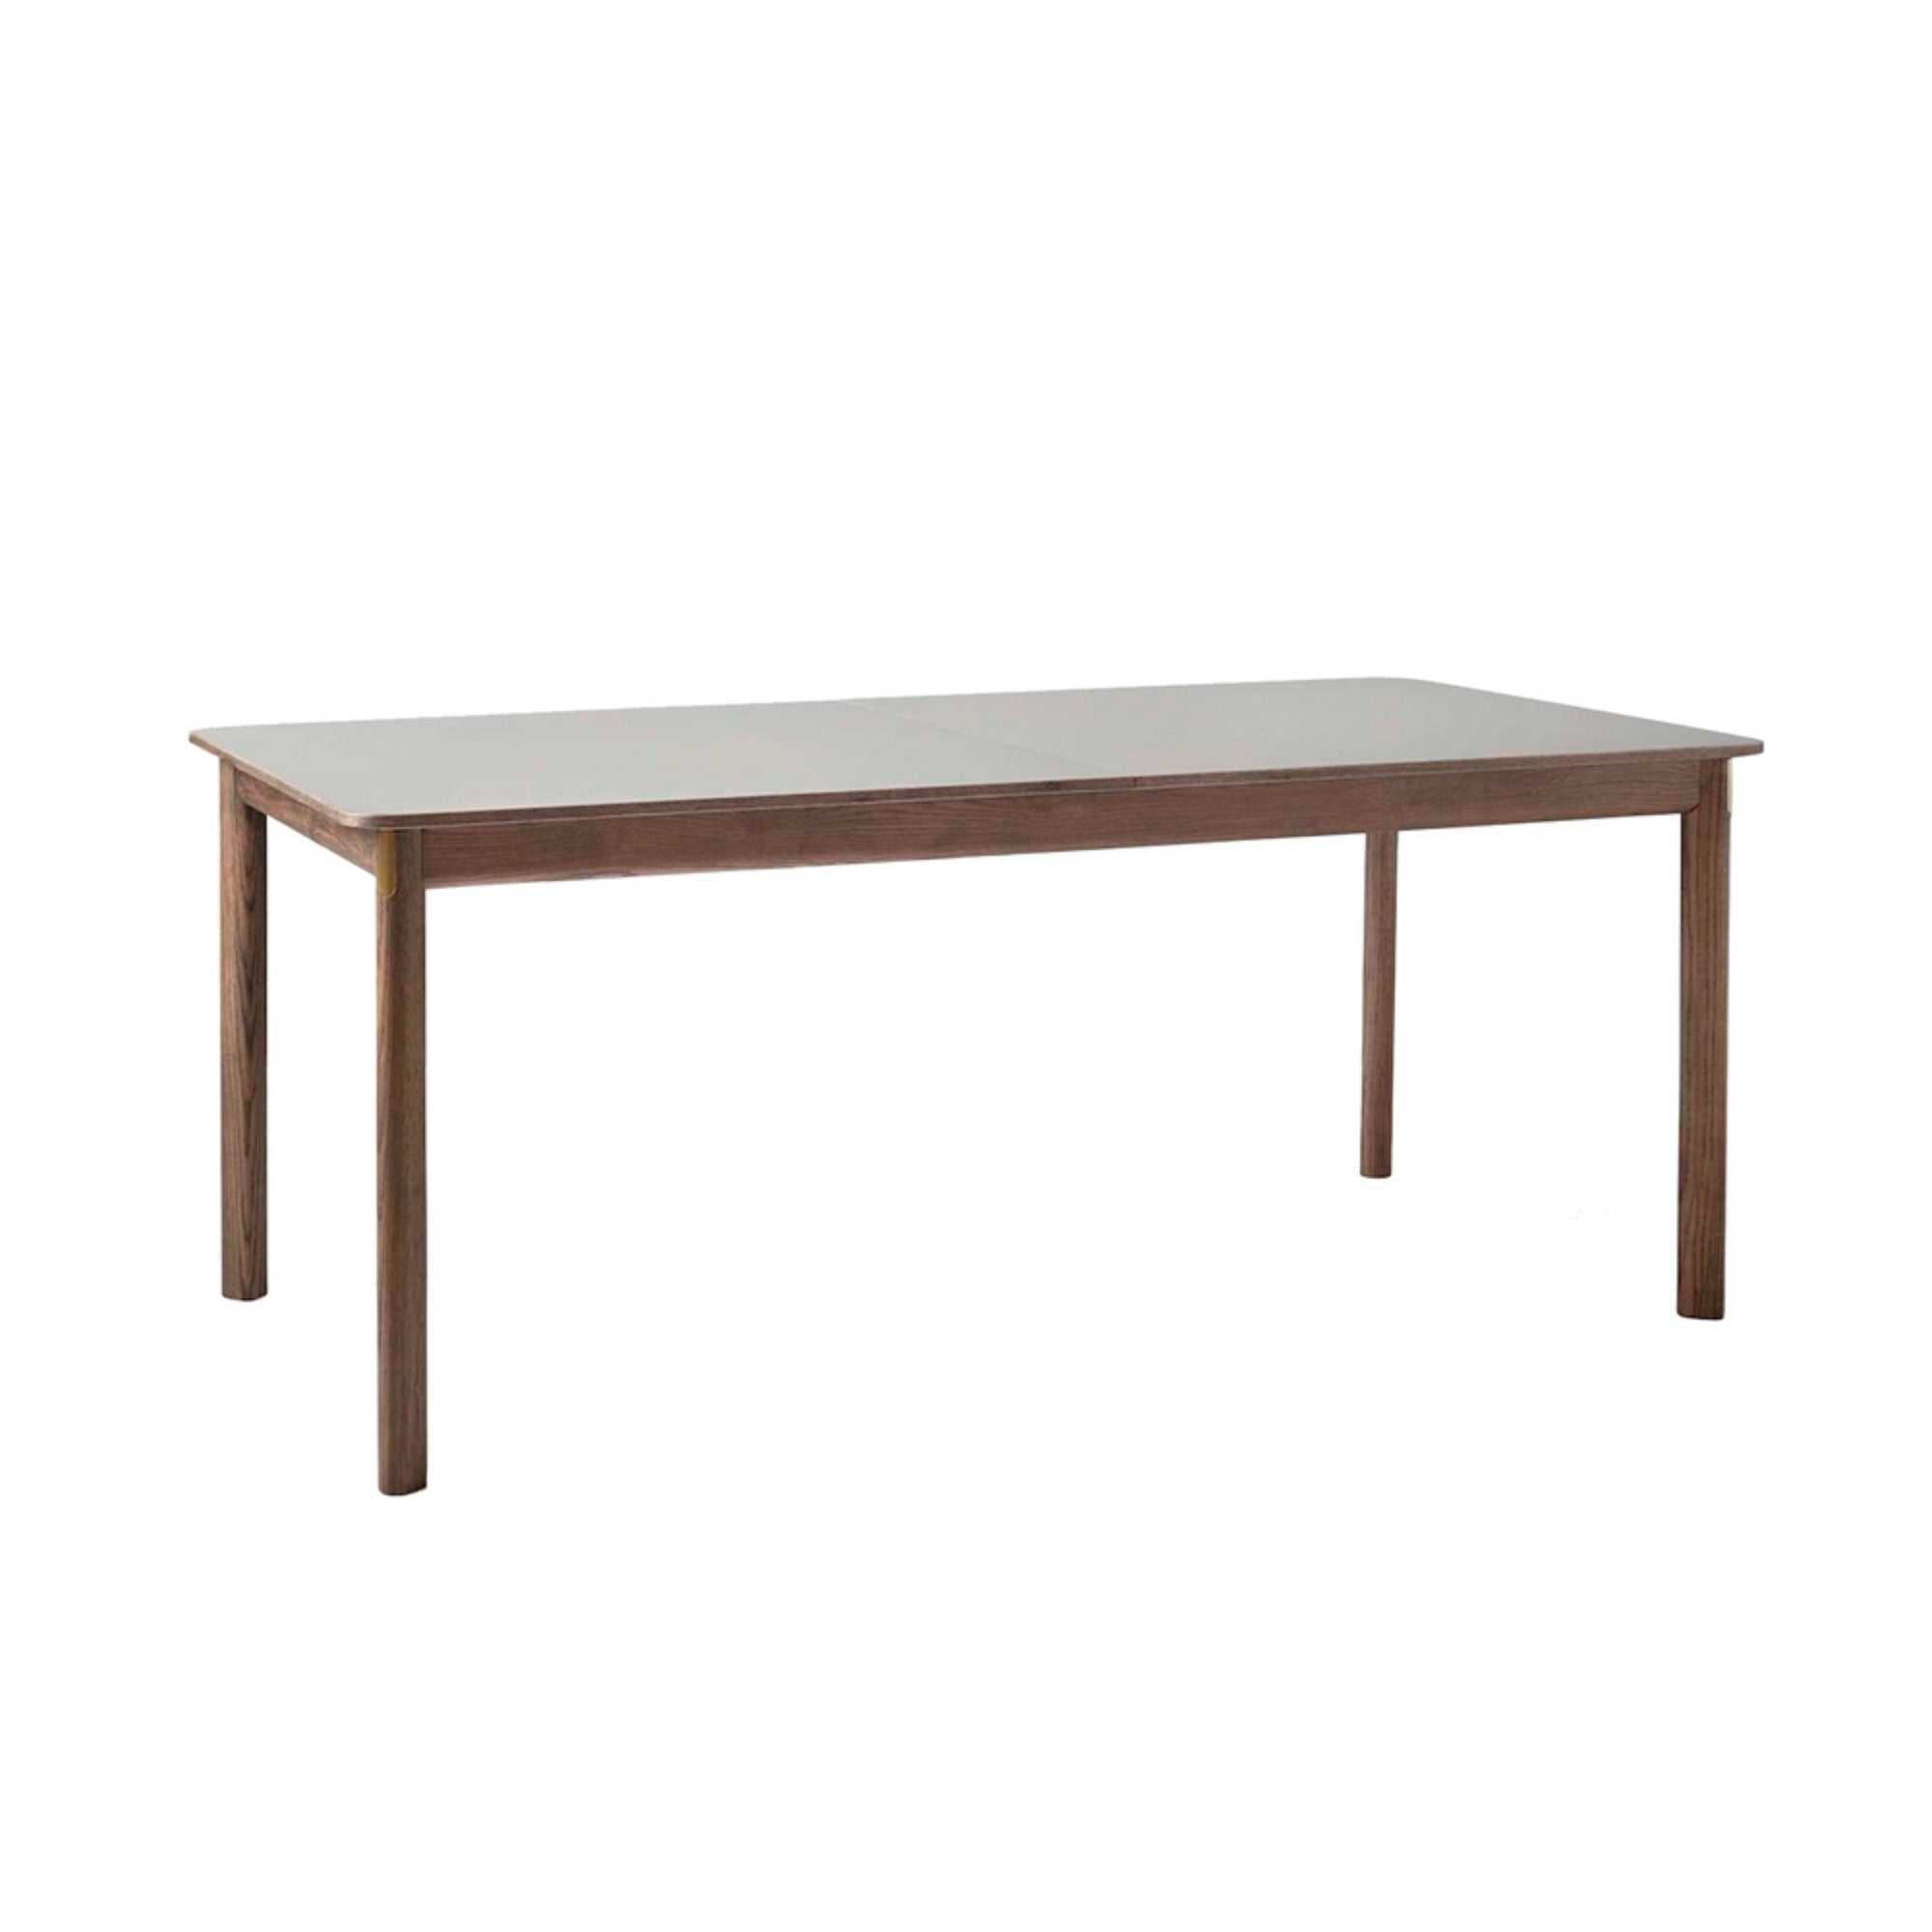 &Tradition Patch HW1 Extendable Table , Smoked Oak